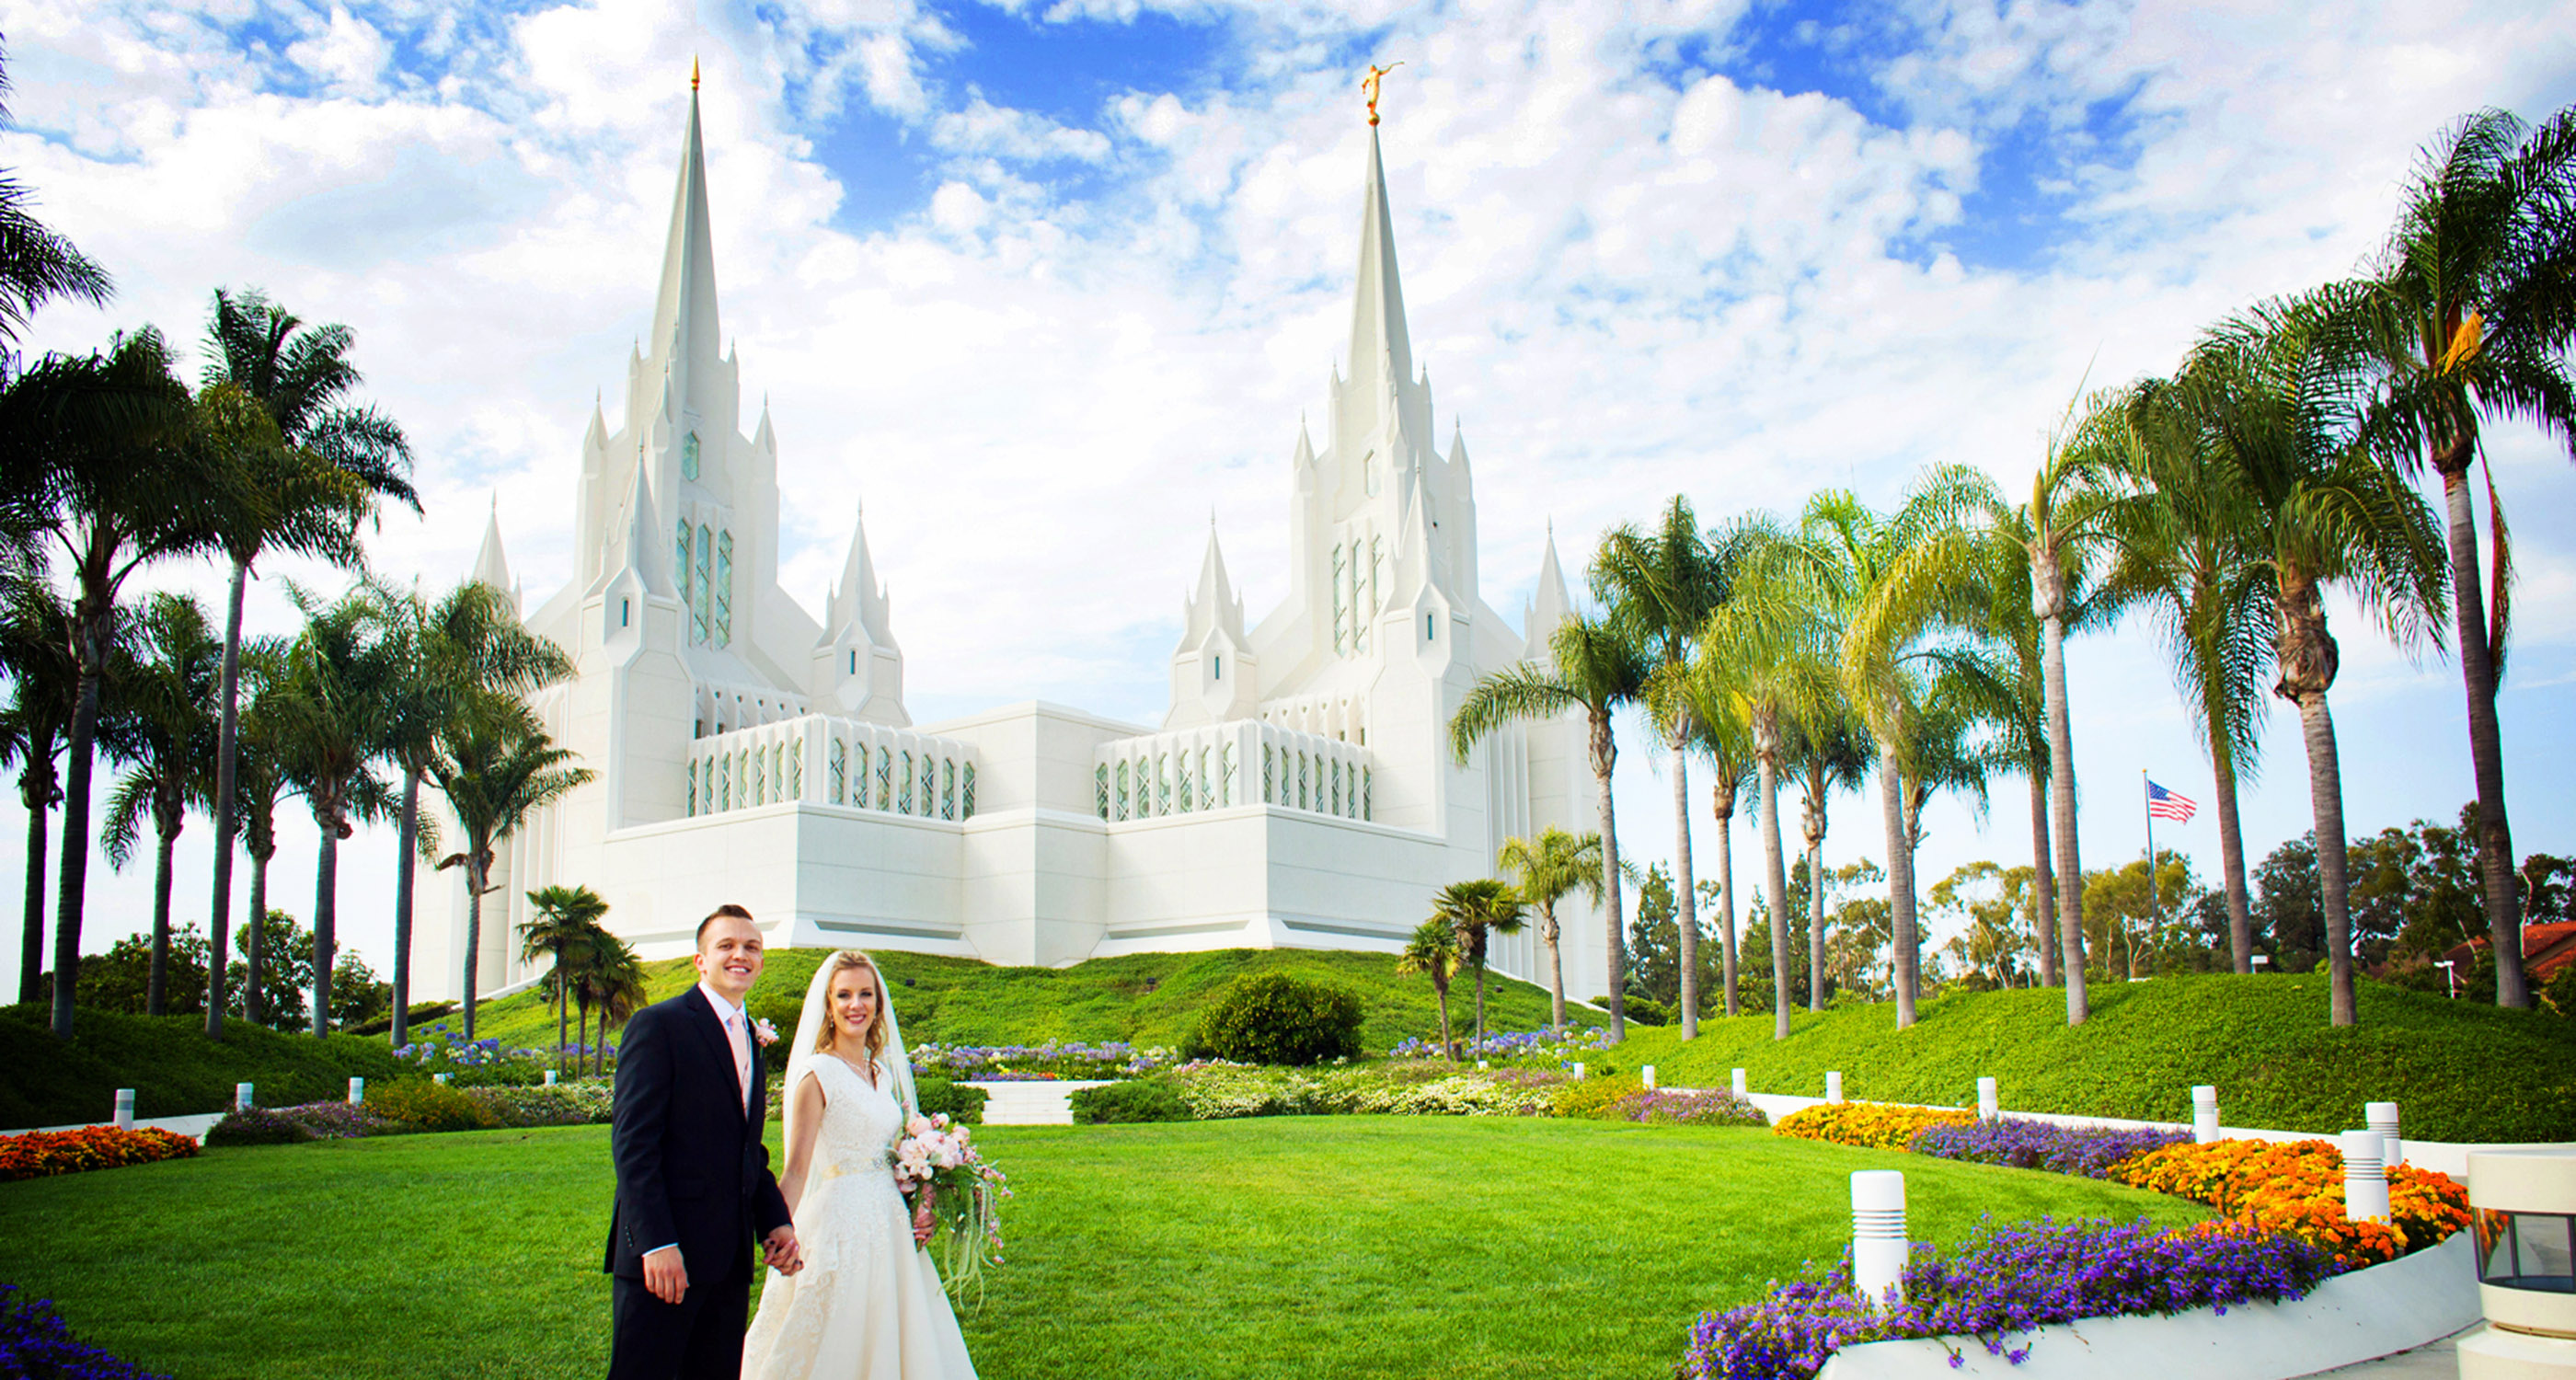 LDS Weddings at San Diego Temple